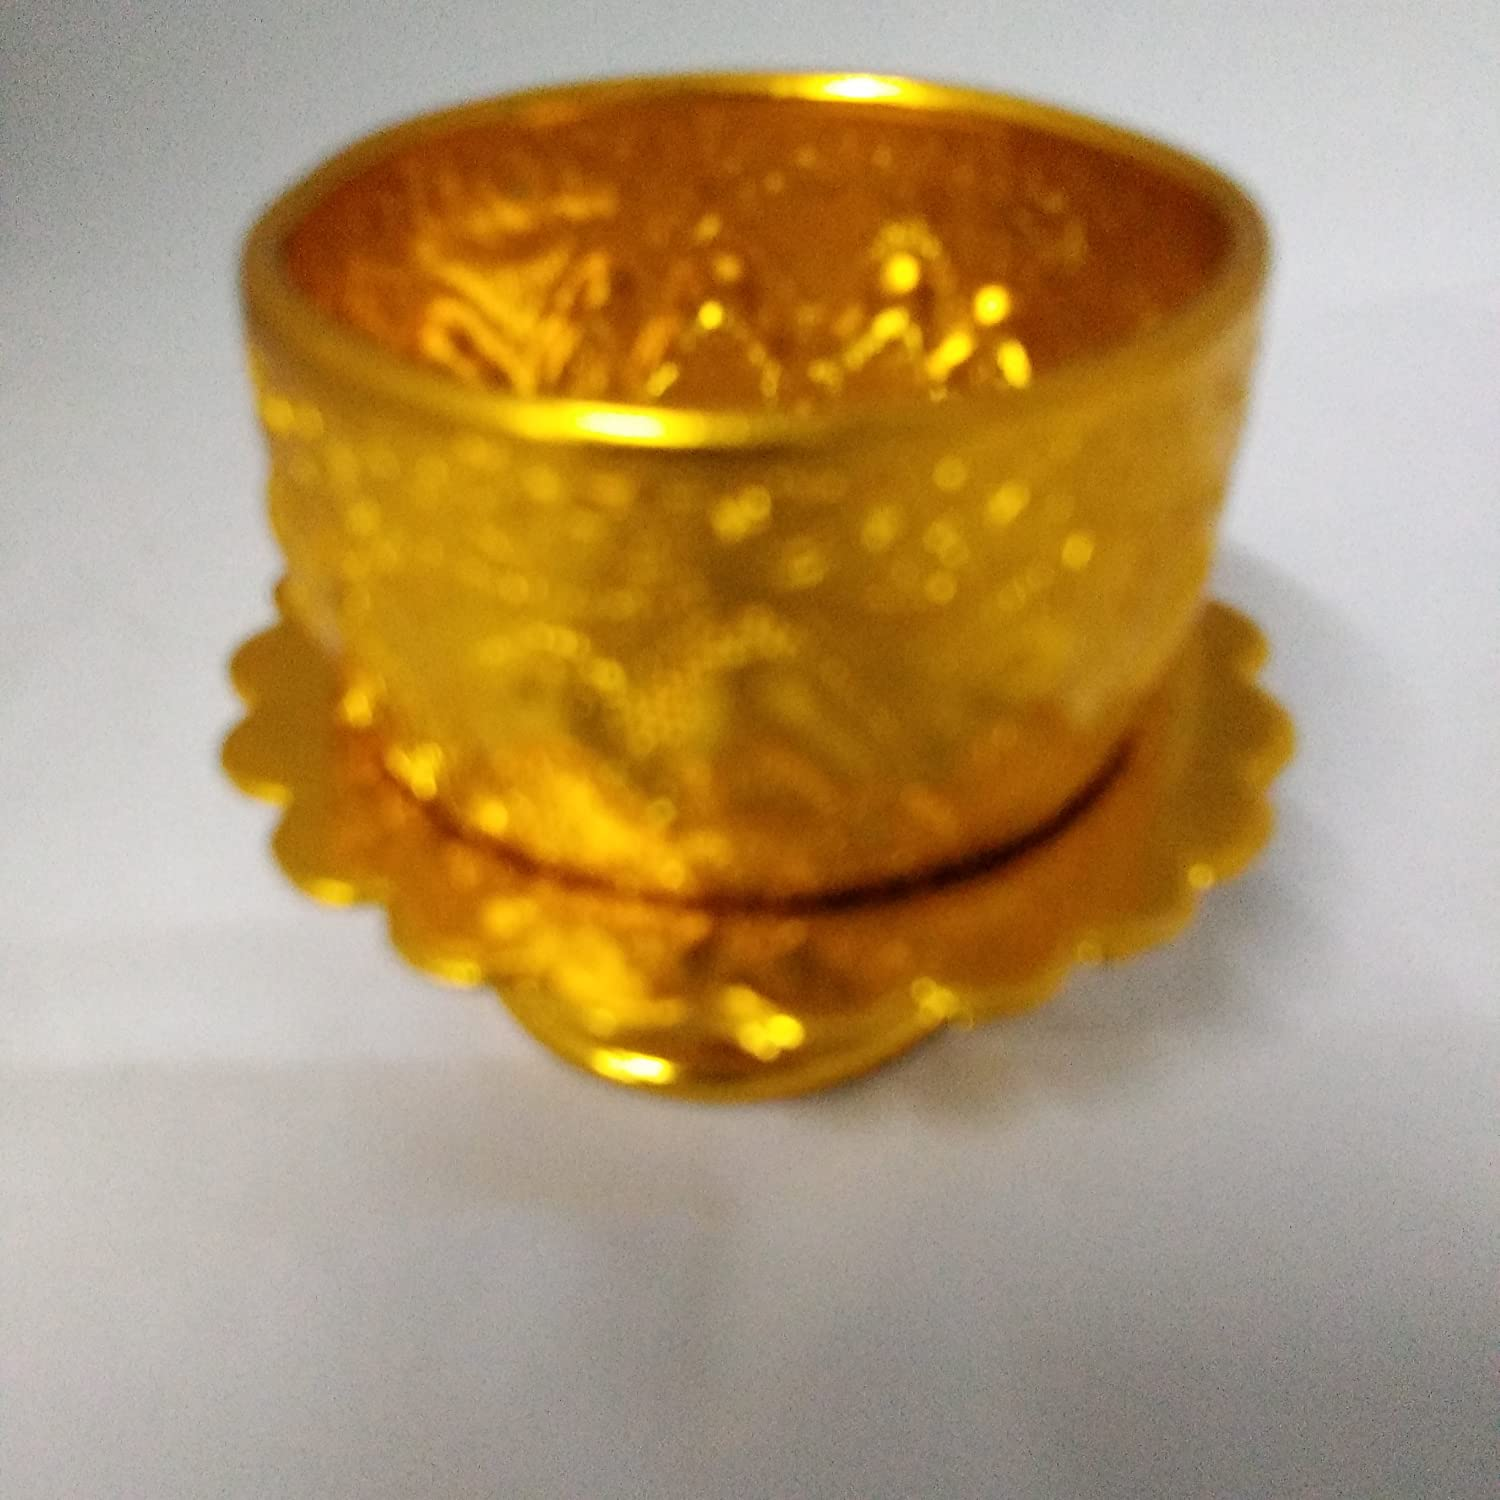 thaisan7 SMALL GOLD COLOR BOWL /&TRAY WATER FOR DRINKING THAI ANTIQUE COLLECTION,Small Side,Tray Dish Plate bowl Dishes,Tool